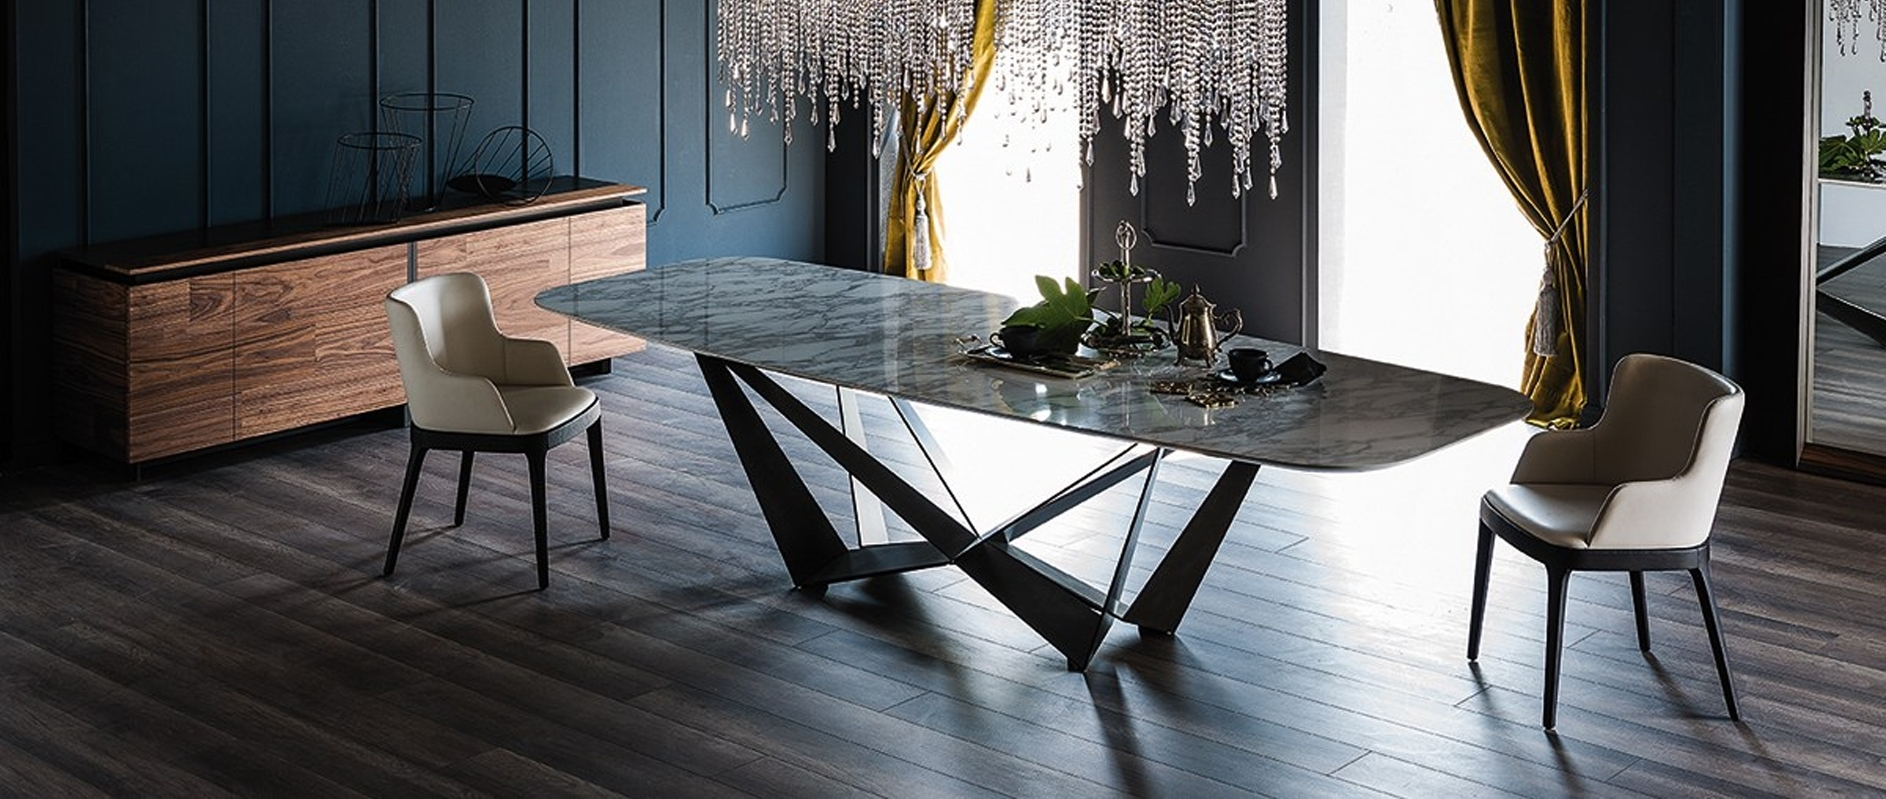 Contemporary Dining Tables Intended For 2017 Dining Room Contemporary Glass Dining Table Set Small Modern Dining (Gallery 6 of 25)